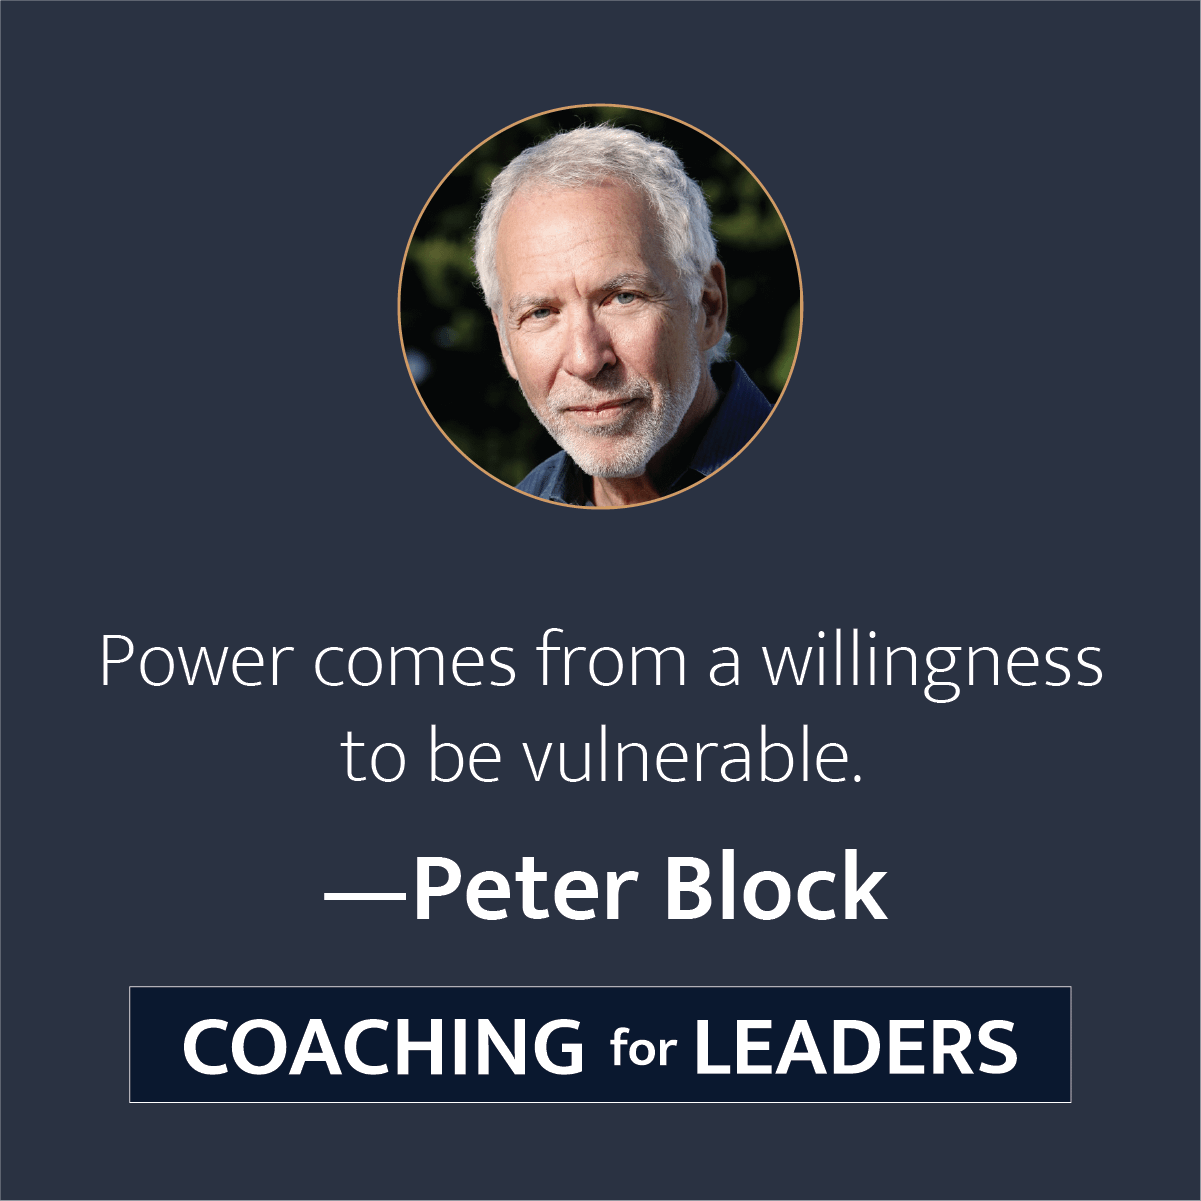 Power comes from a willingness to be vulnerable.